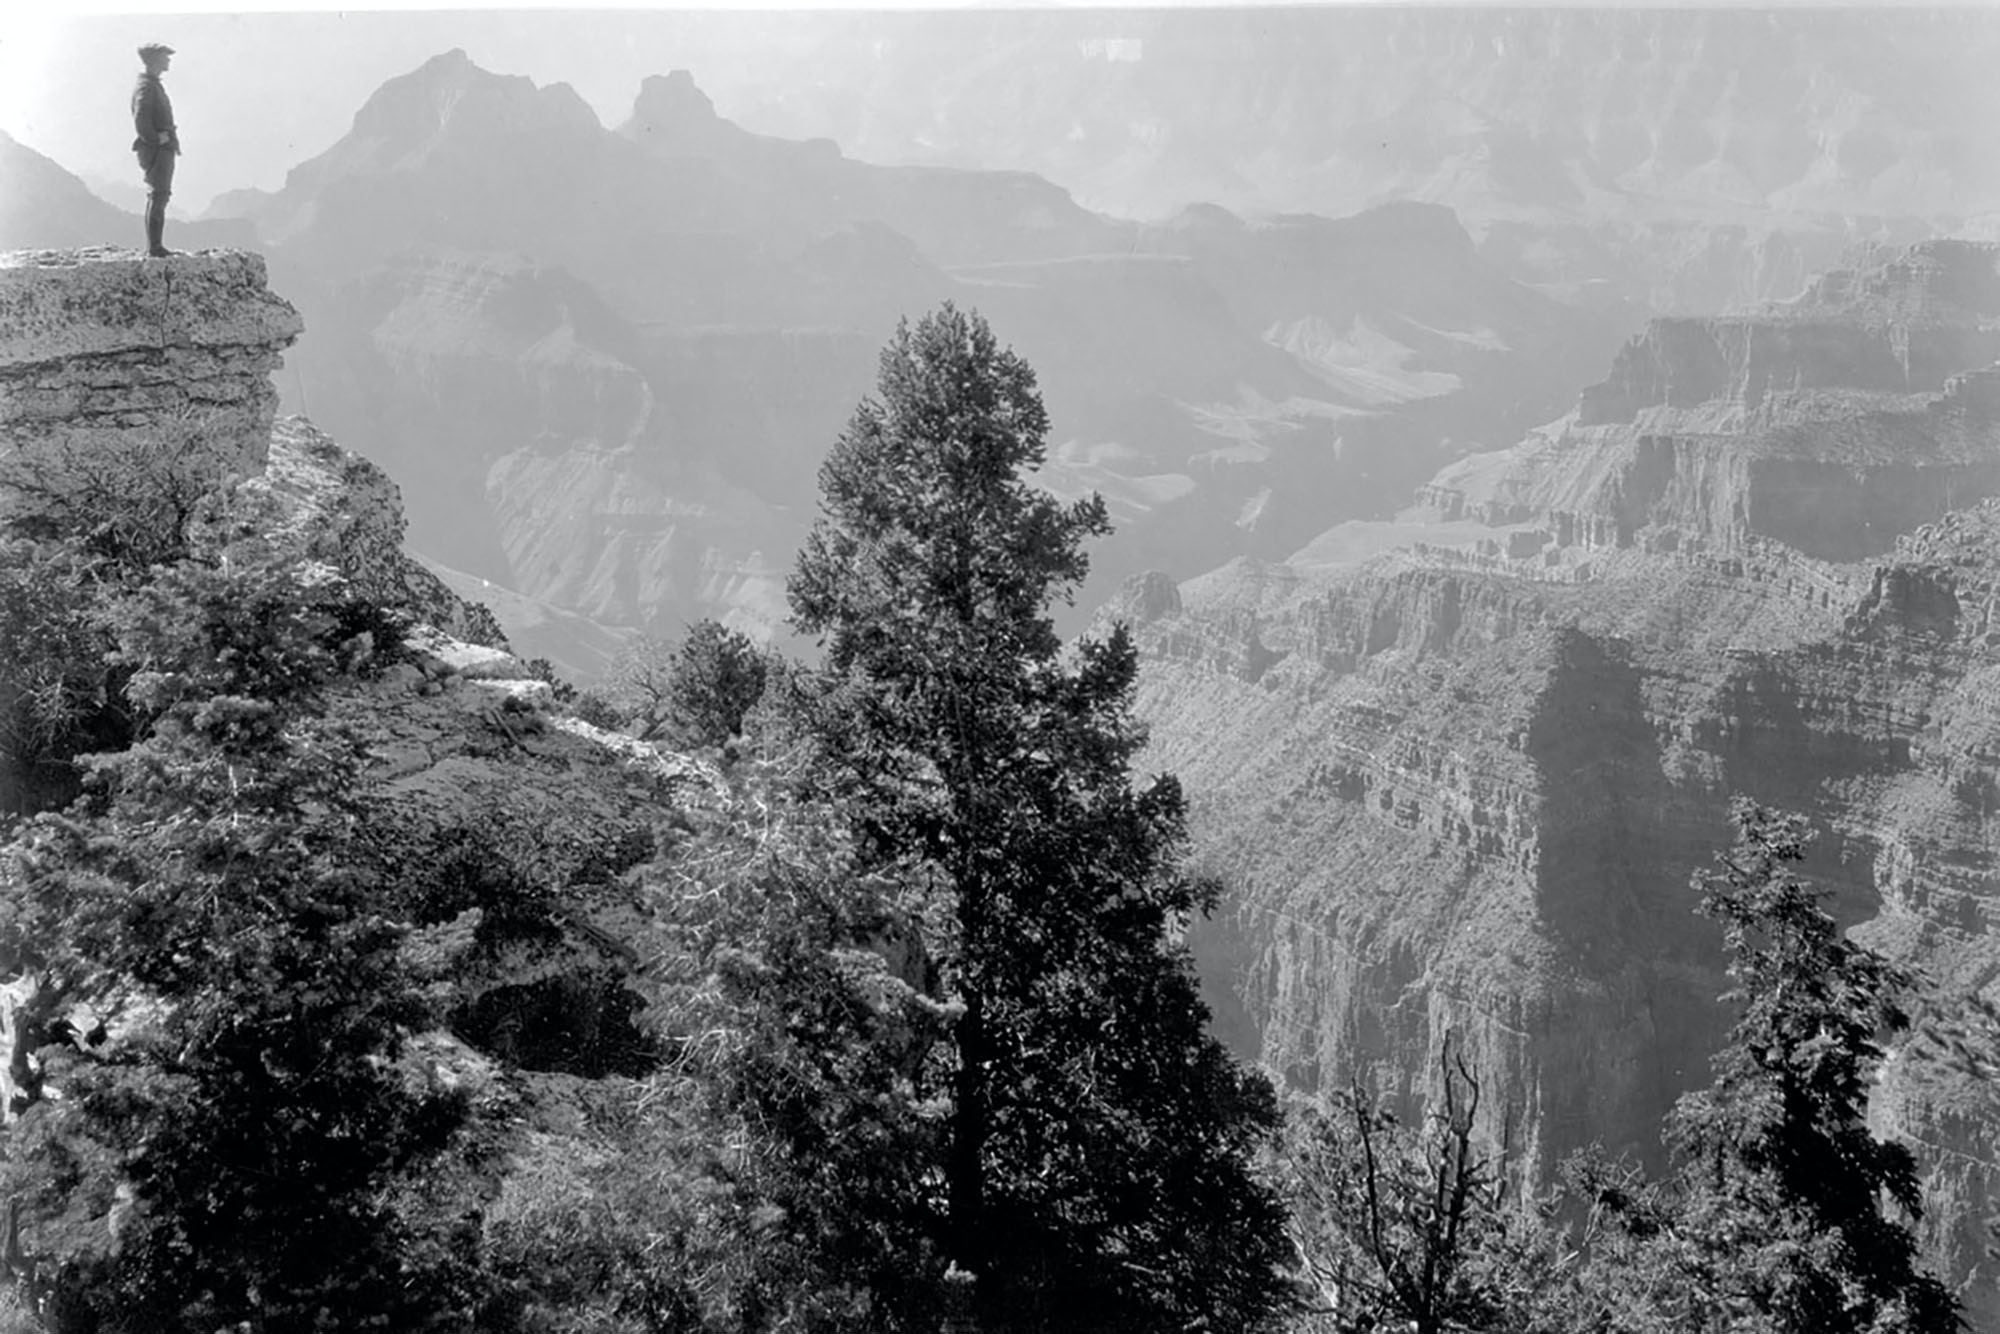 In 1919, President Woodrow Wilson created Grand Canyon National Park, preserving the area for future generations.